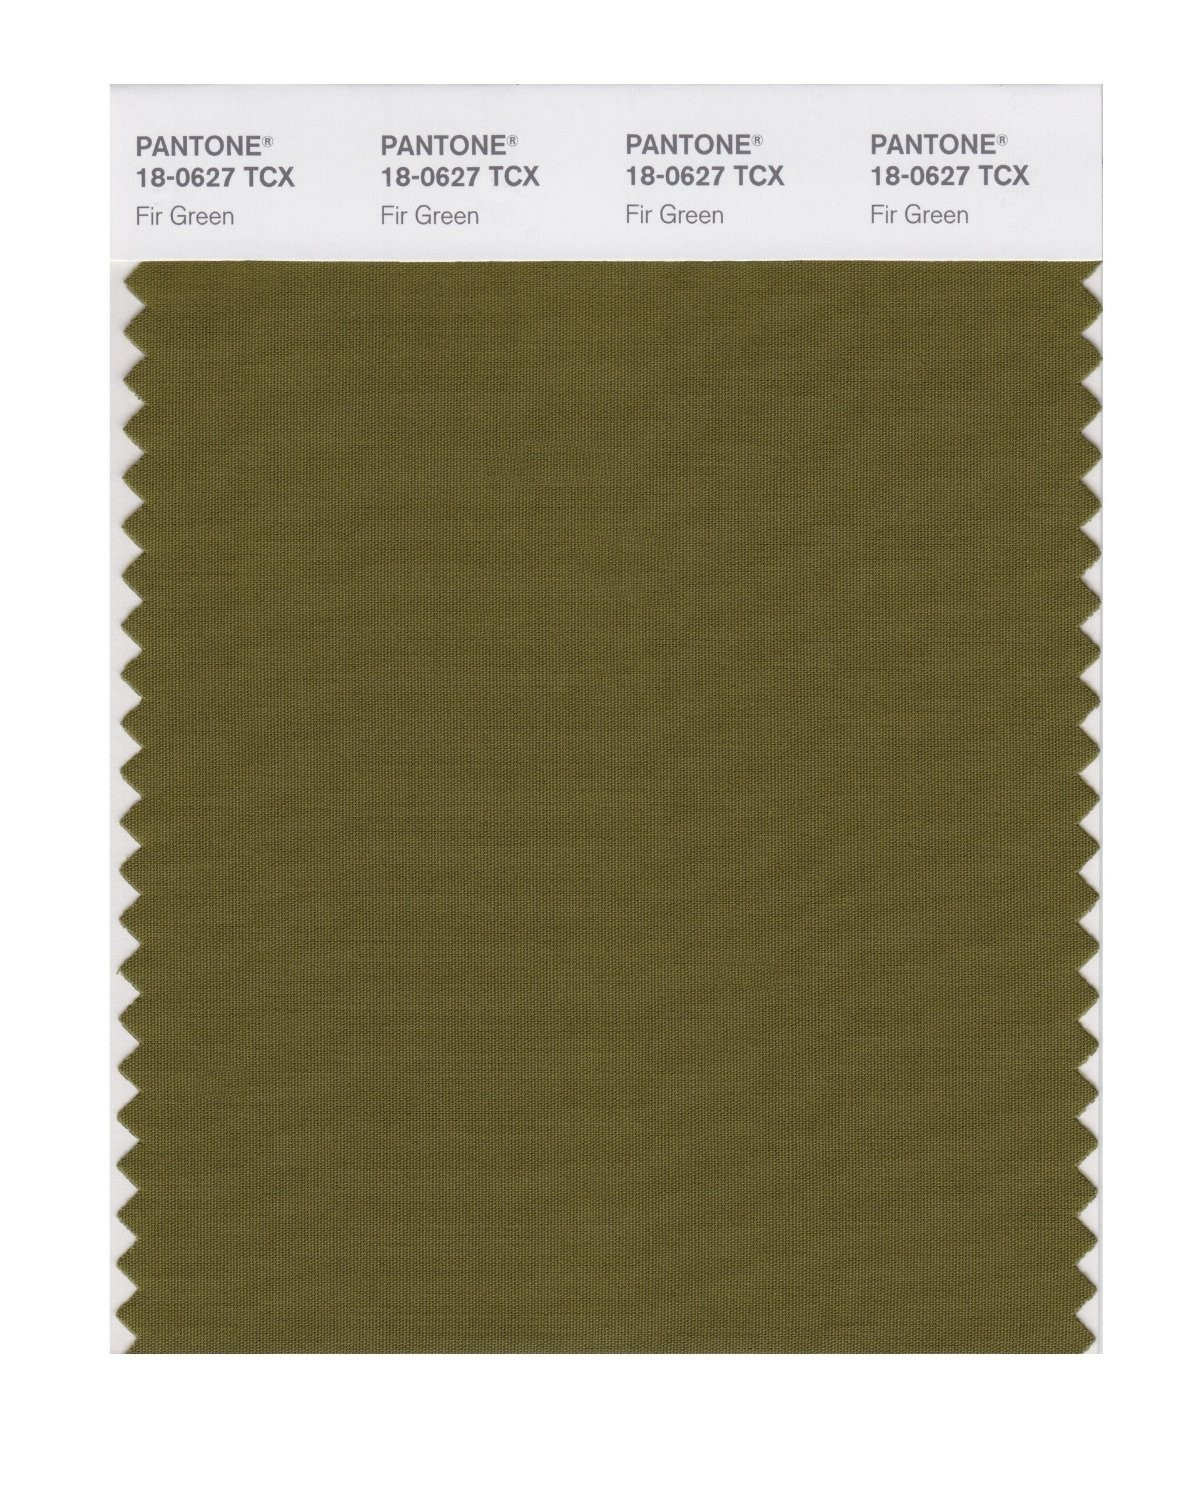 Pantone 18-0627 TCX Swatch Card Fir Green